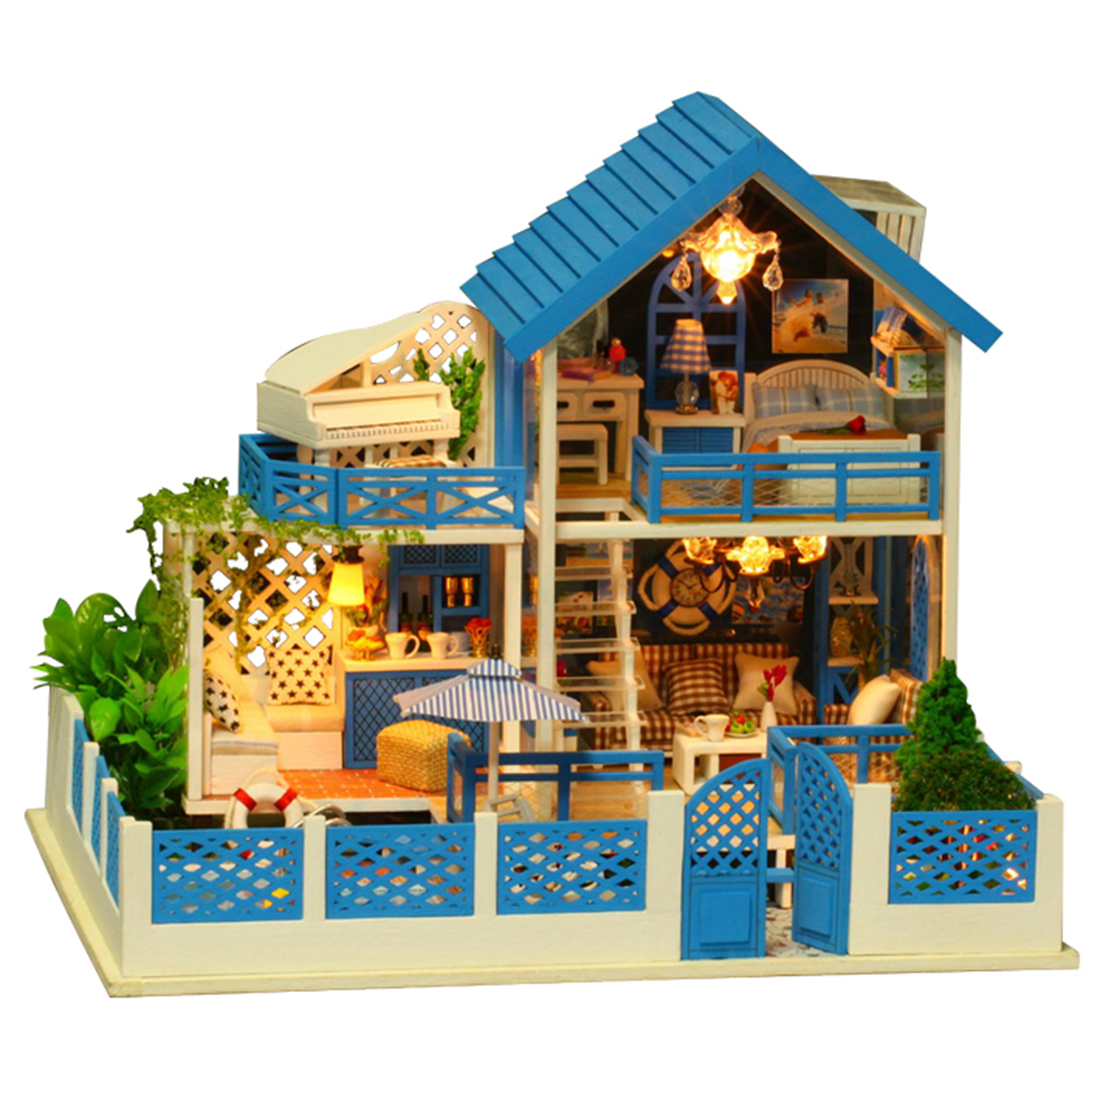 Kids DIY Creative Handmade Theme Wooden Cabin Assembly Building Model Toy Set with Light and Music